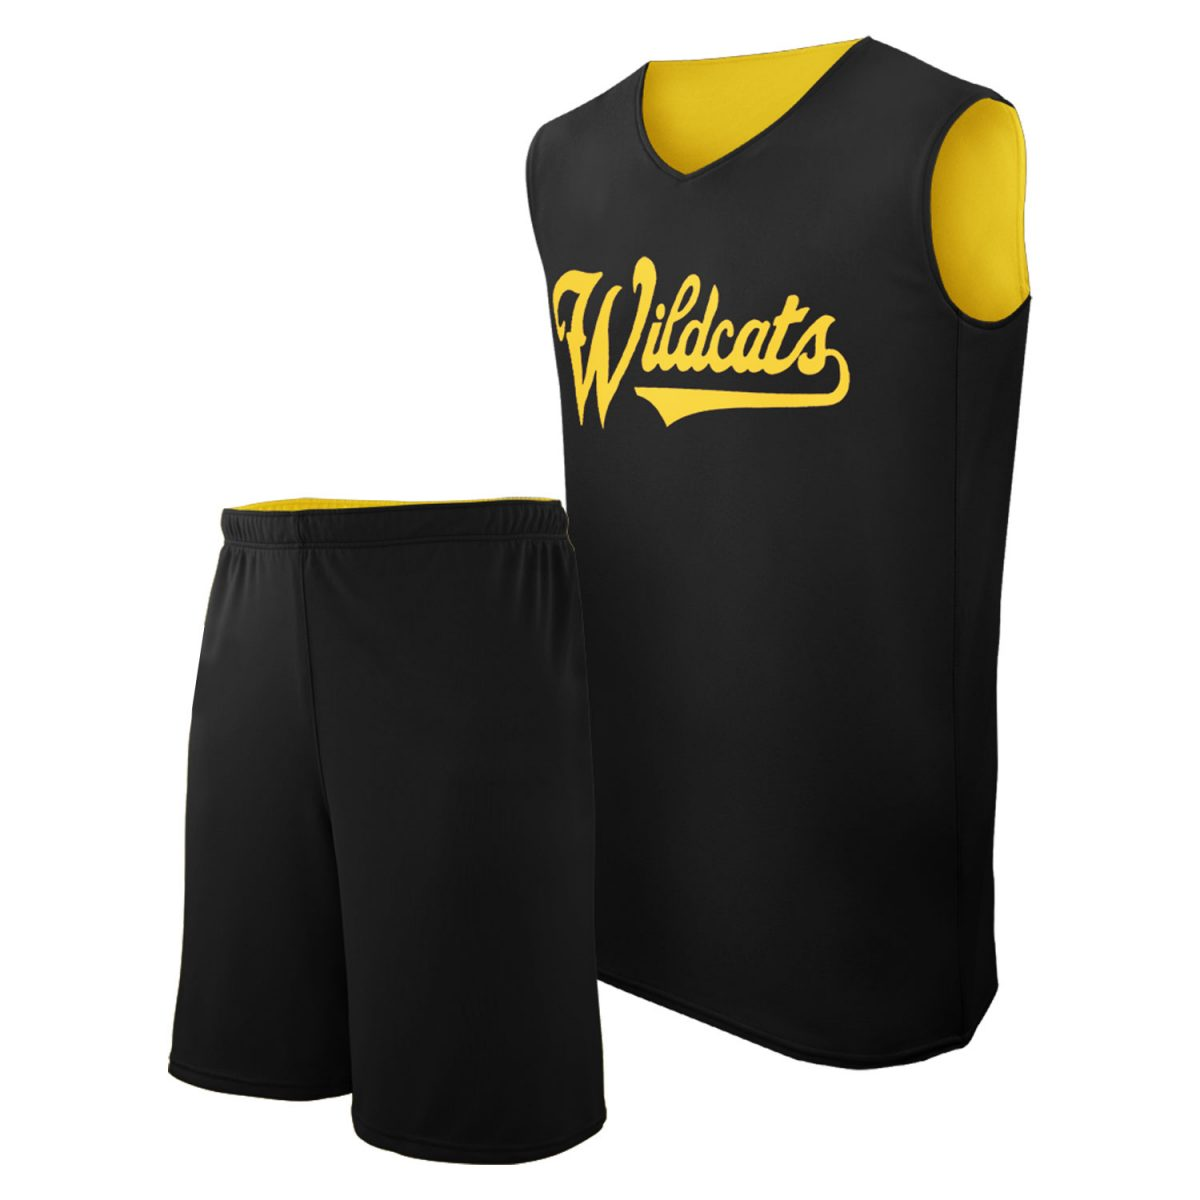 Boys Basketball Uniforms Manufacturers in Nashik